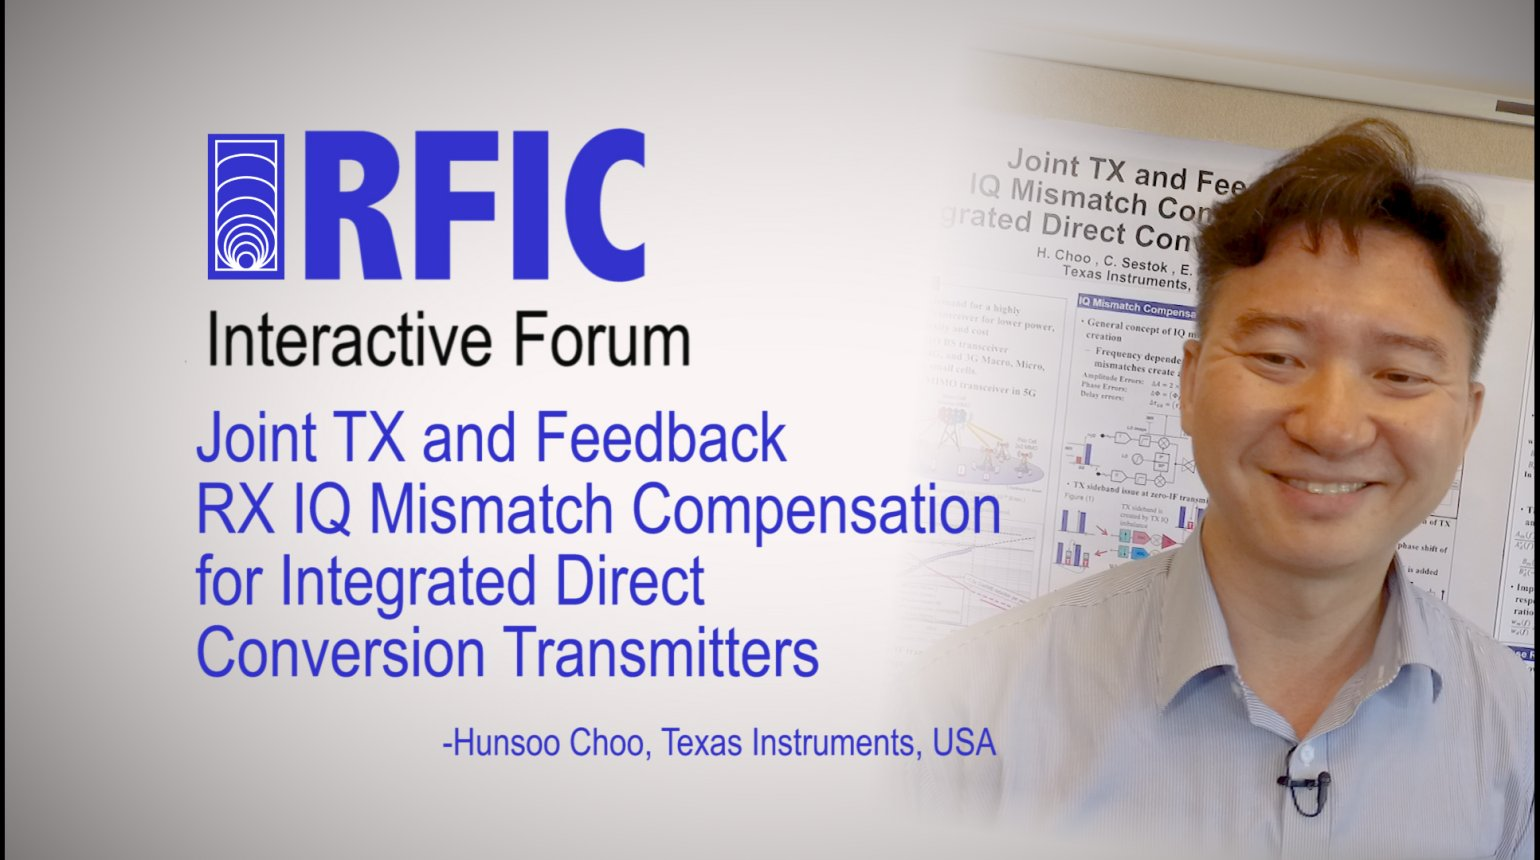 Joint TX and Feedback RX IQ Mismatch Compensation for Integrated Direct Conversion Transmitters: RFIC Interactive Forum 2017